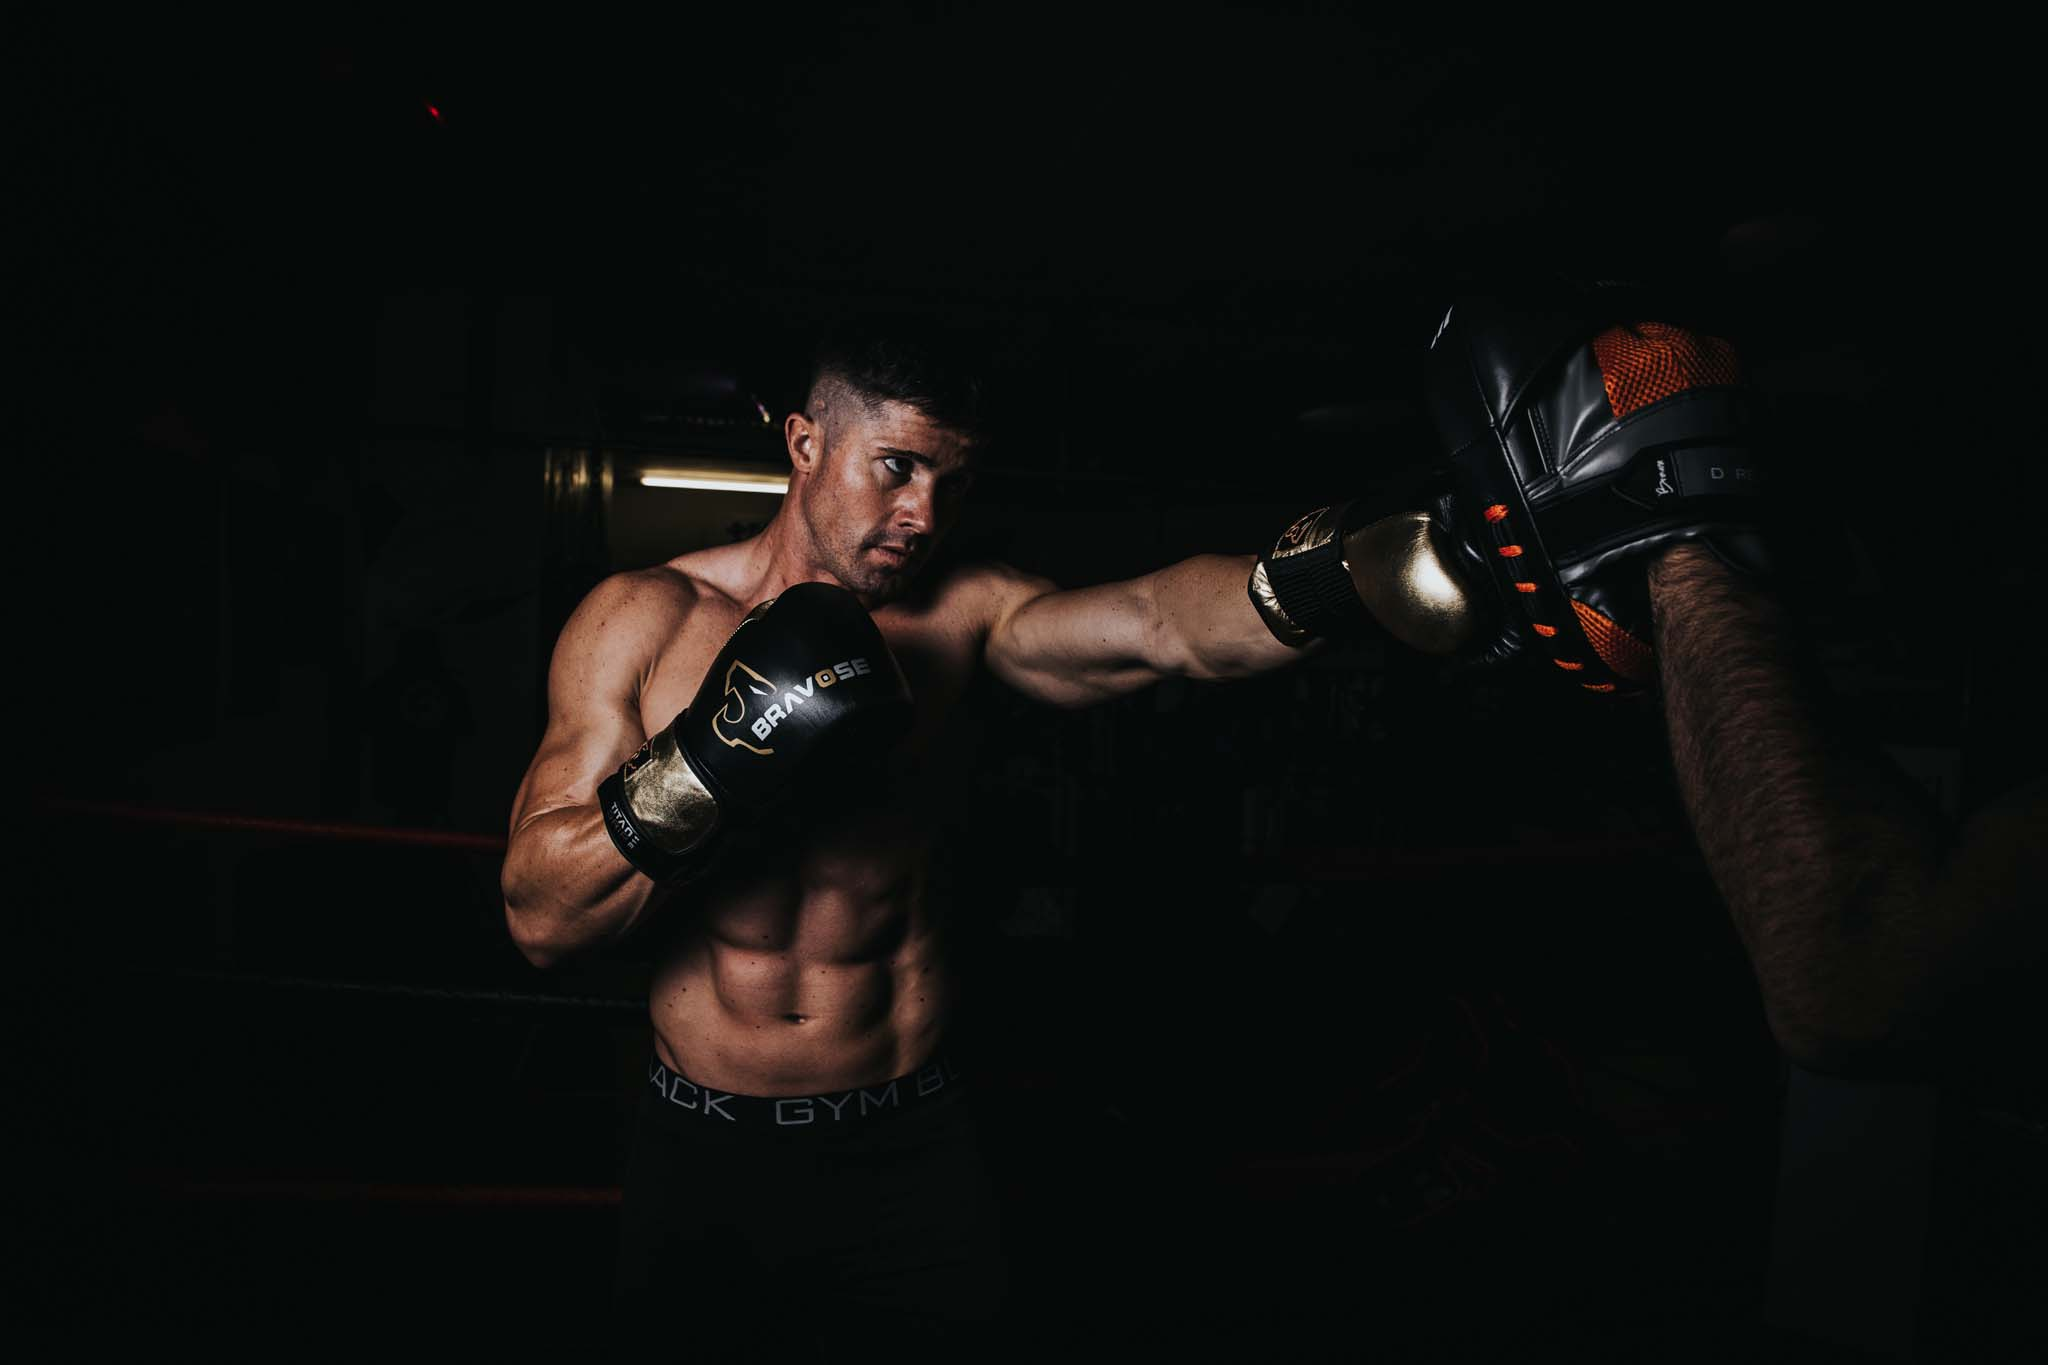 Boxing motivation and training accountability hacks